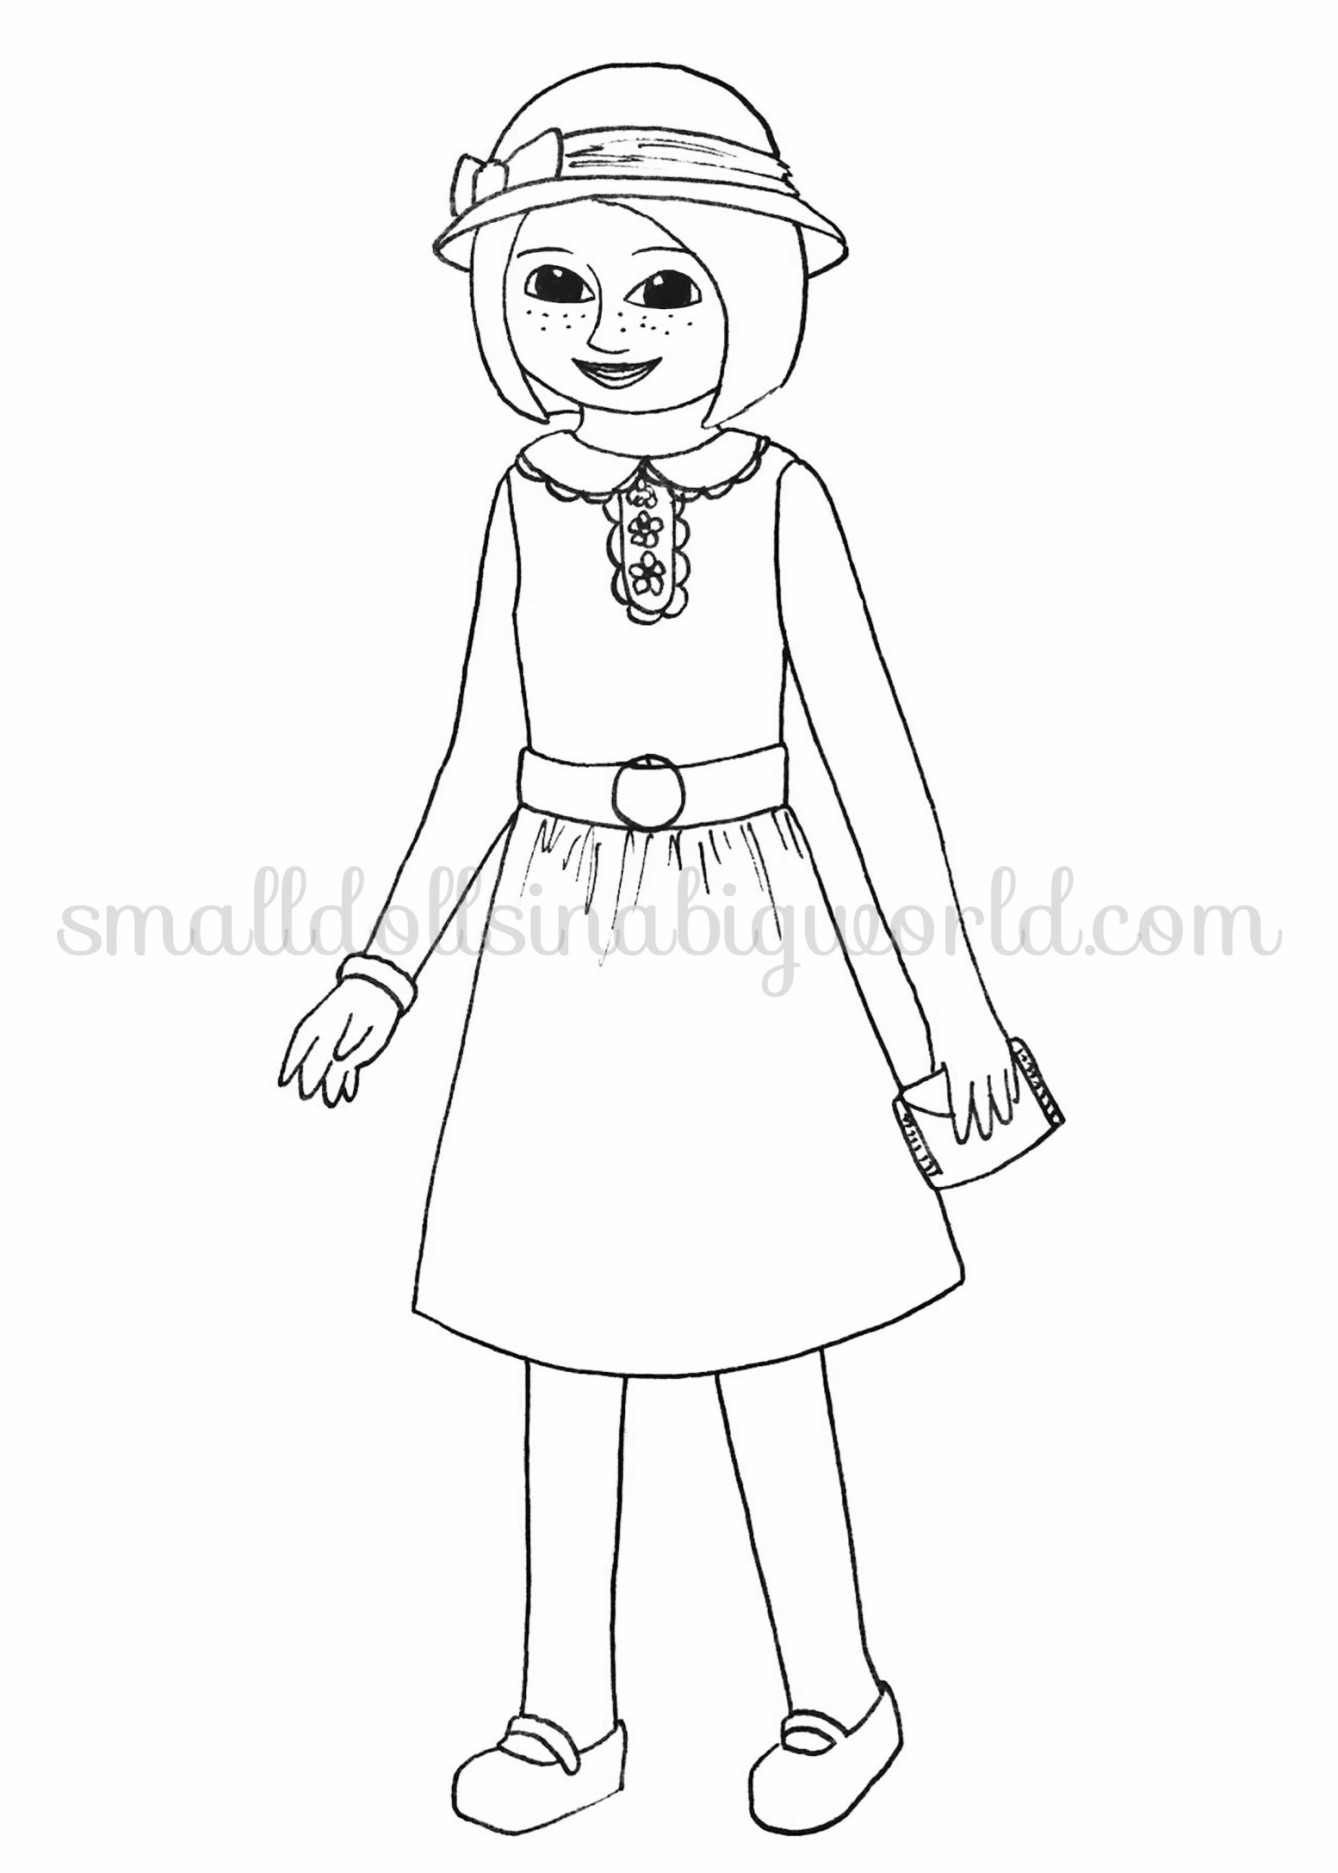 American girl pages to color - Beforever Coloring Pages Small Dolls In A Big World American Girl Coloring Pages Beforever